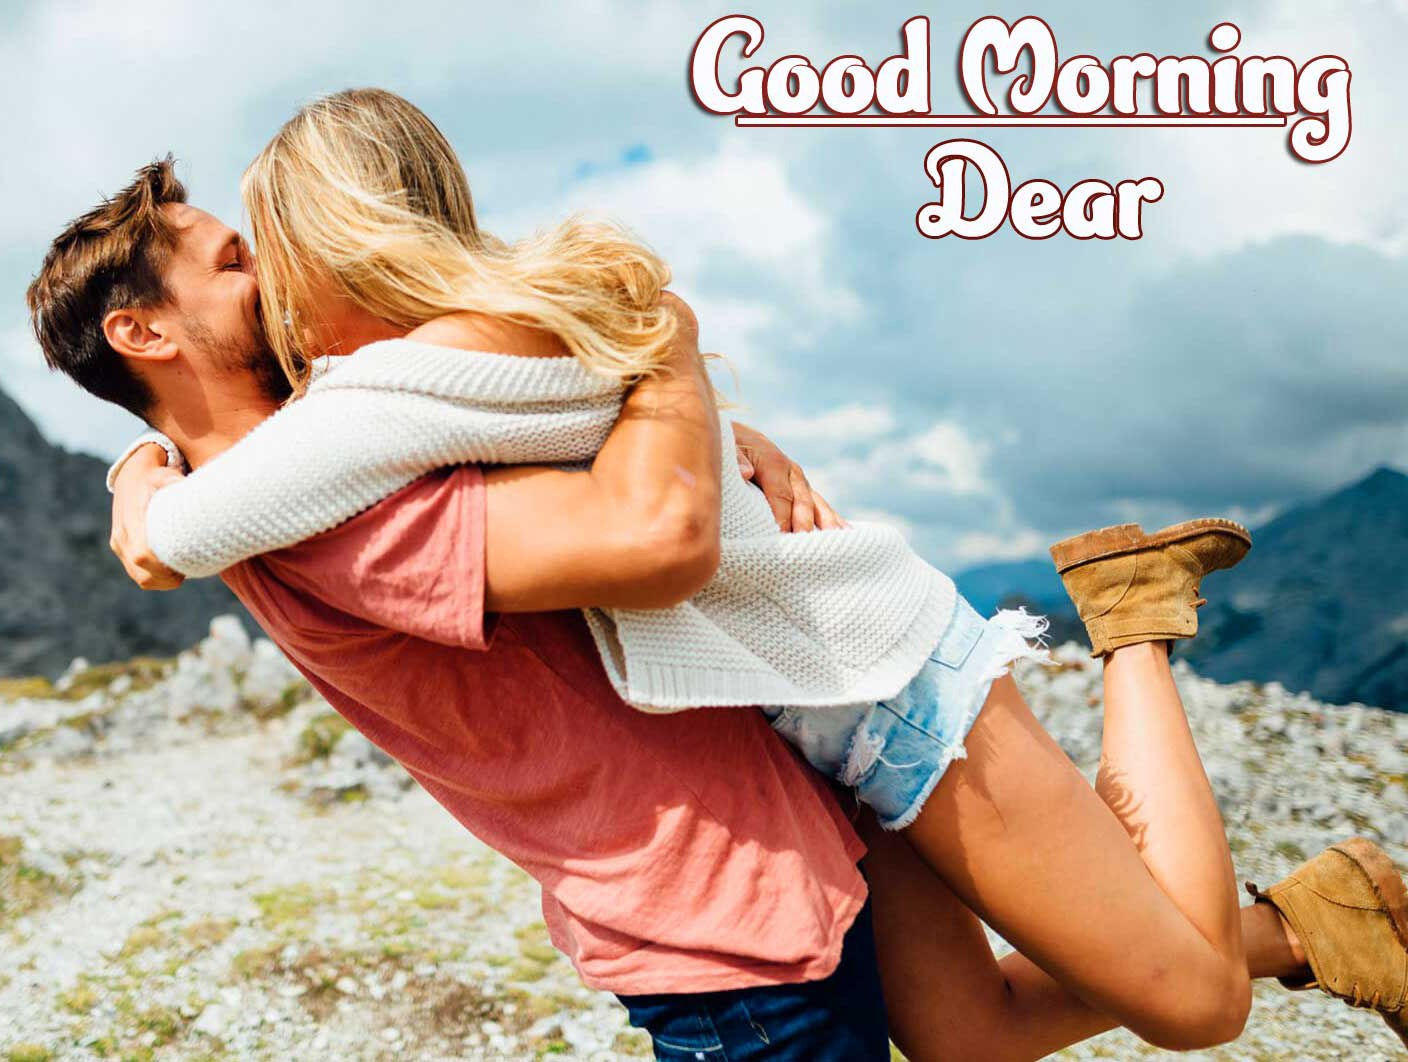 Best Love Couple Good Morning Wishes Images Wallpaper Free Download